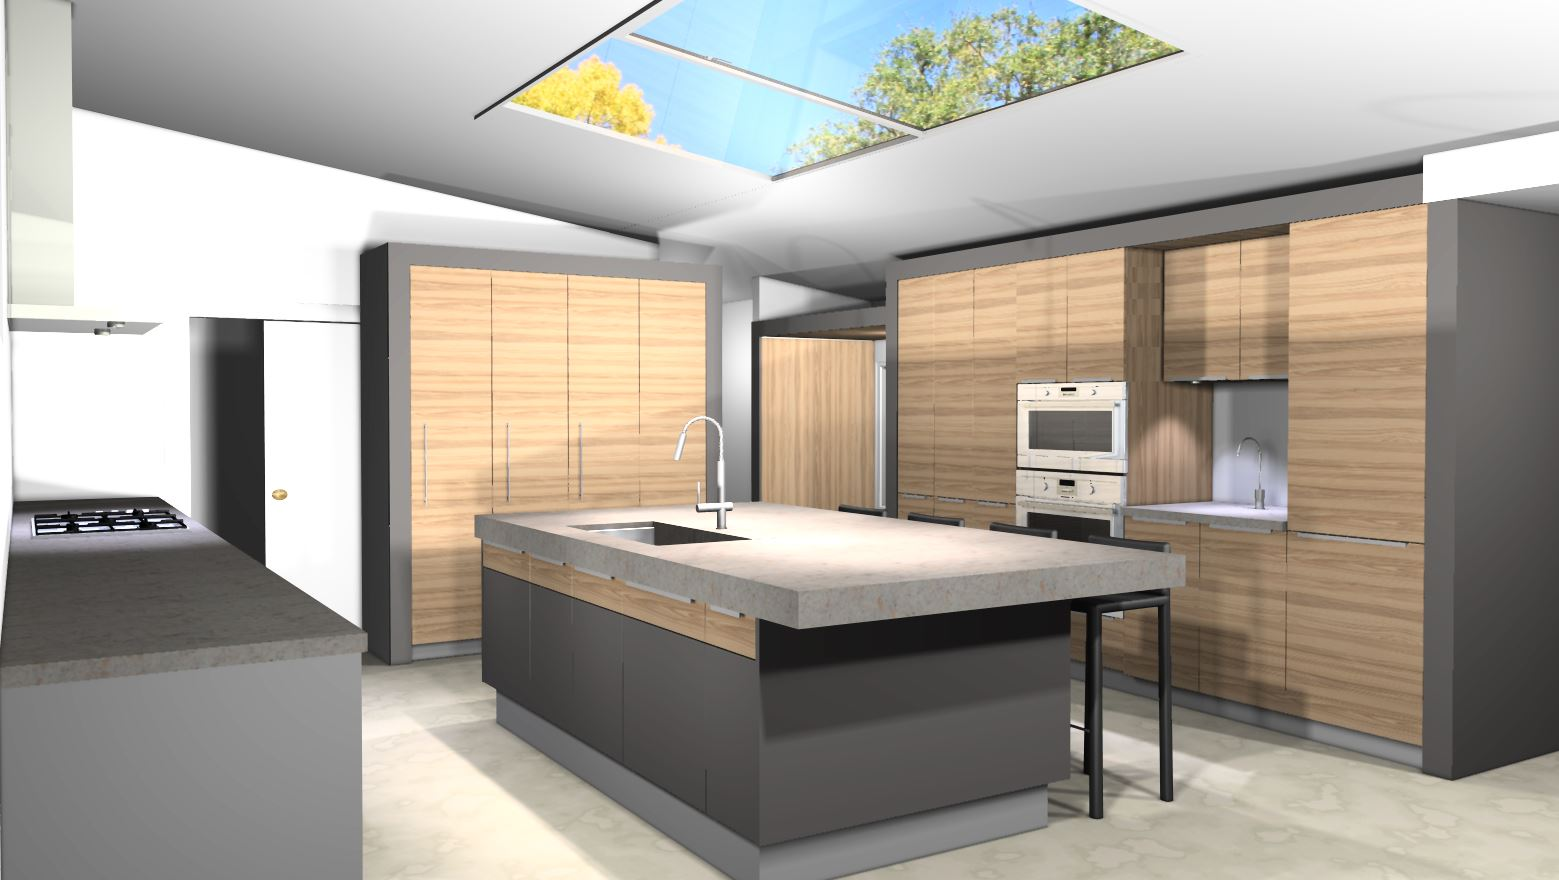 Kitchen No Wall Cabinets Modern Kitchen Design Midcentury In A Colonial Town